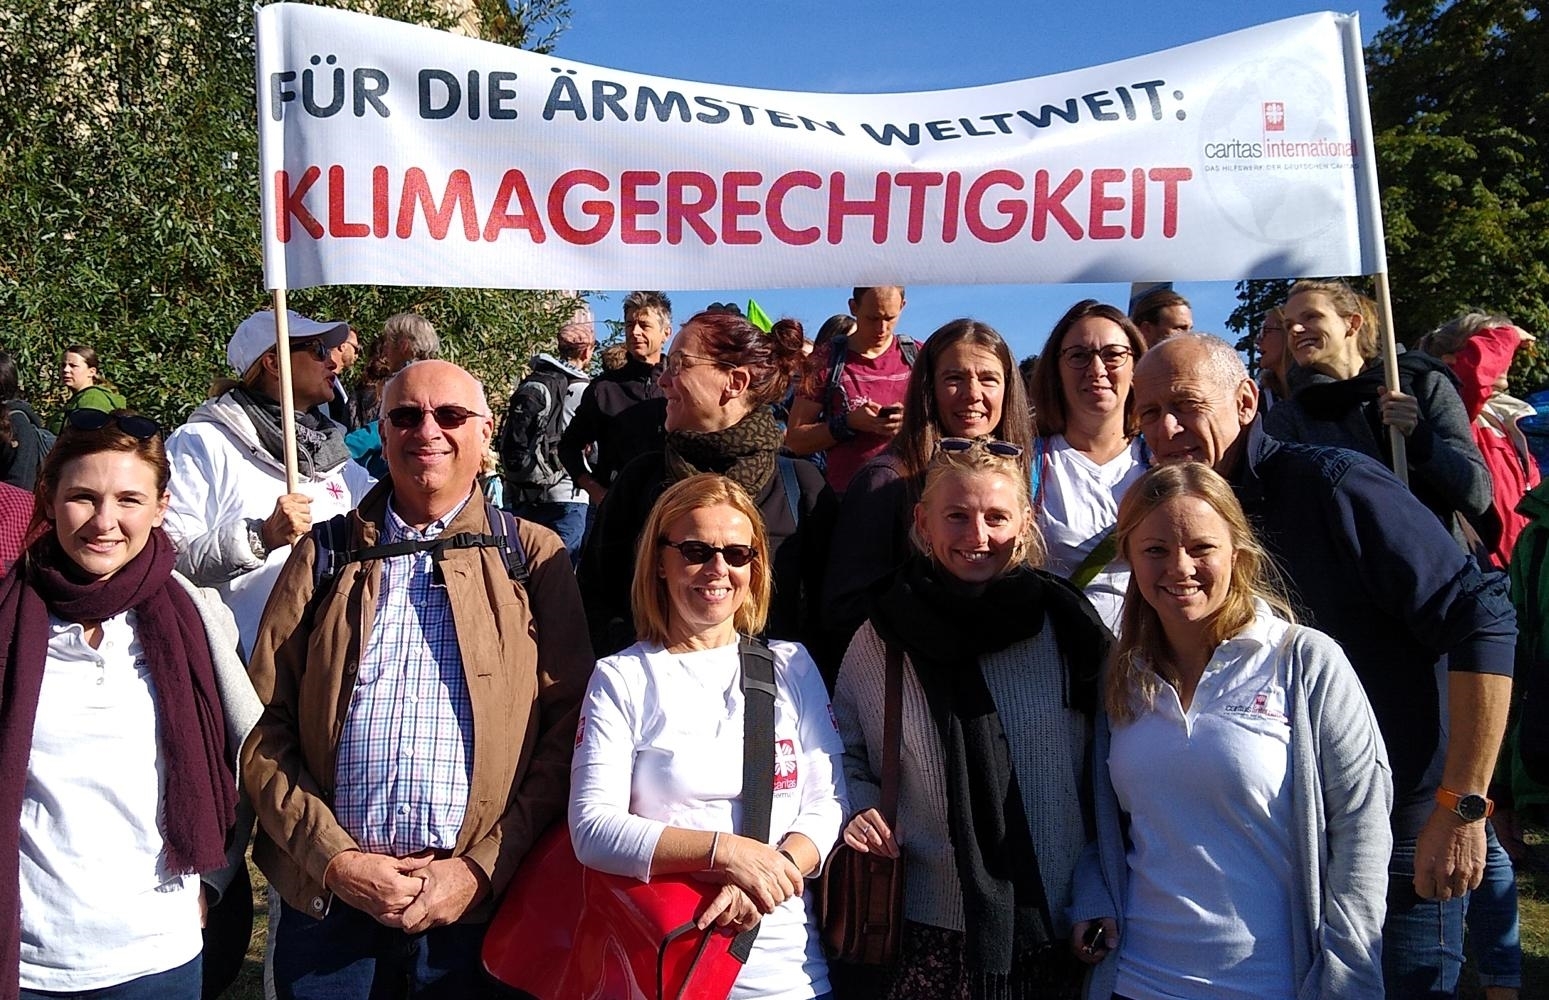 Mitarbeitende von Caritas international halten bei der Fridays-for-Future-Demonstration am 20. September 2019 ein Plakat mit der Aufschrift: Für die Ärmsten weltweit - Klimagerechtigkeit!